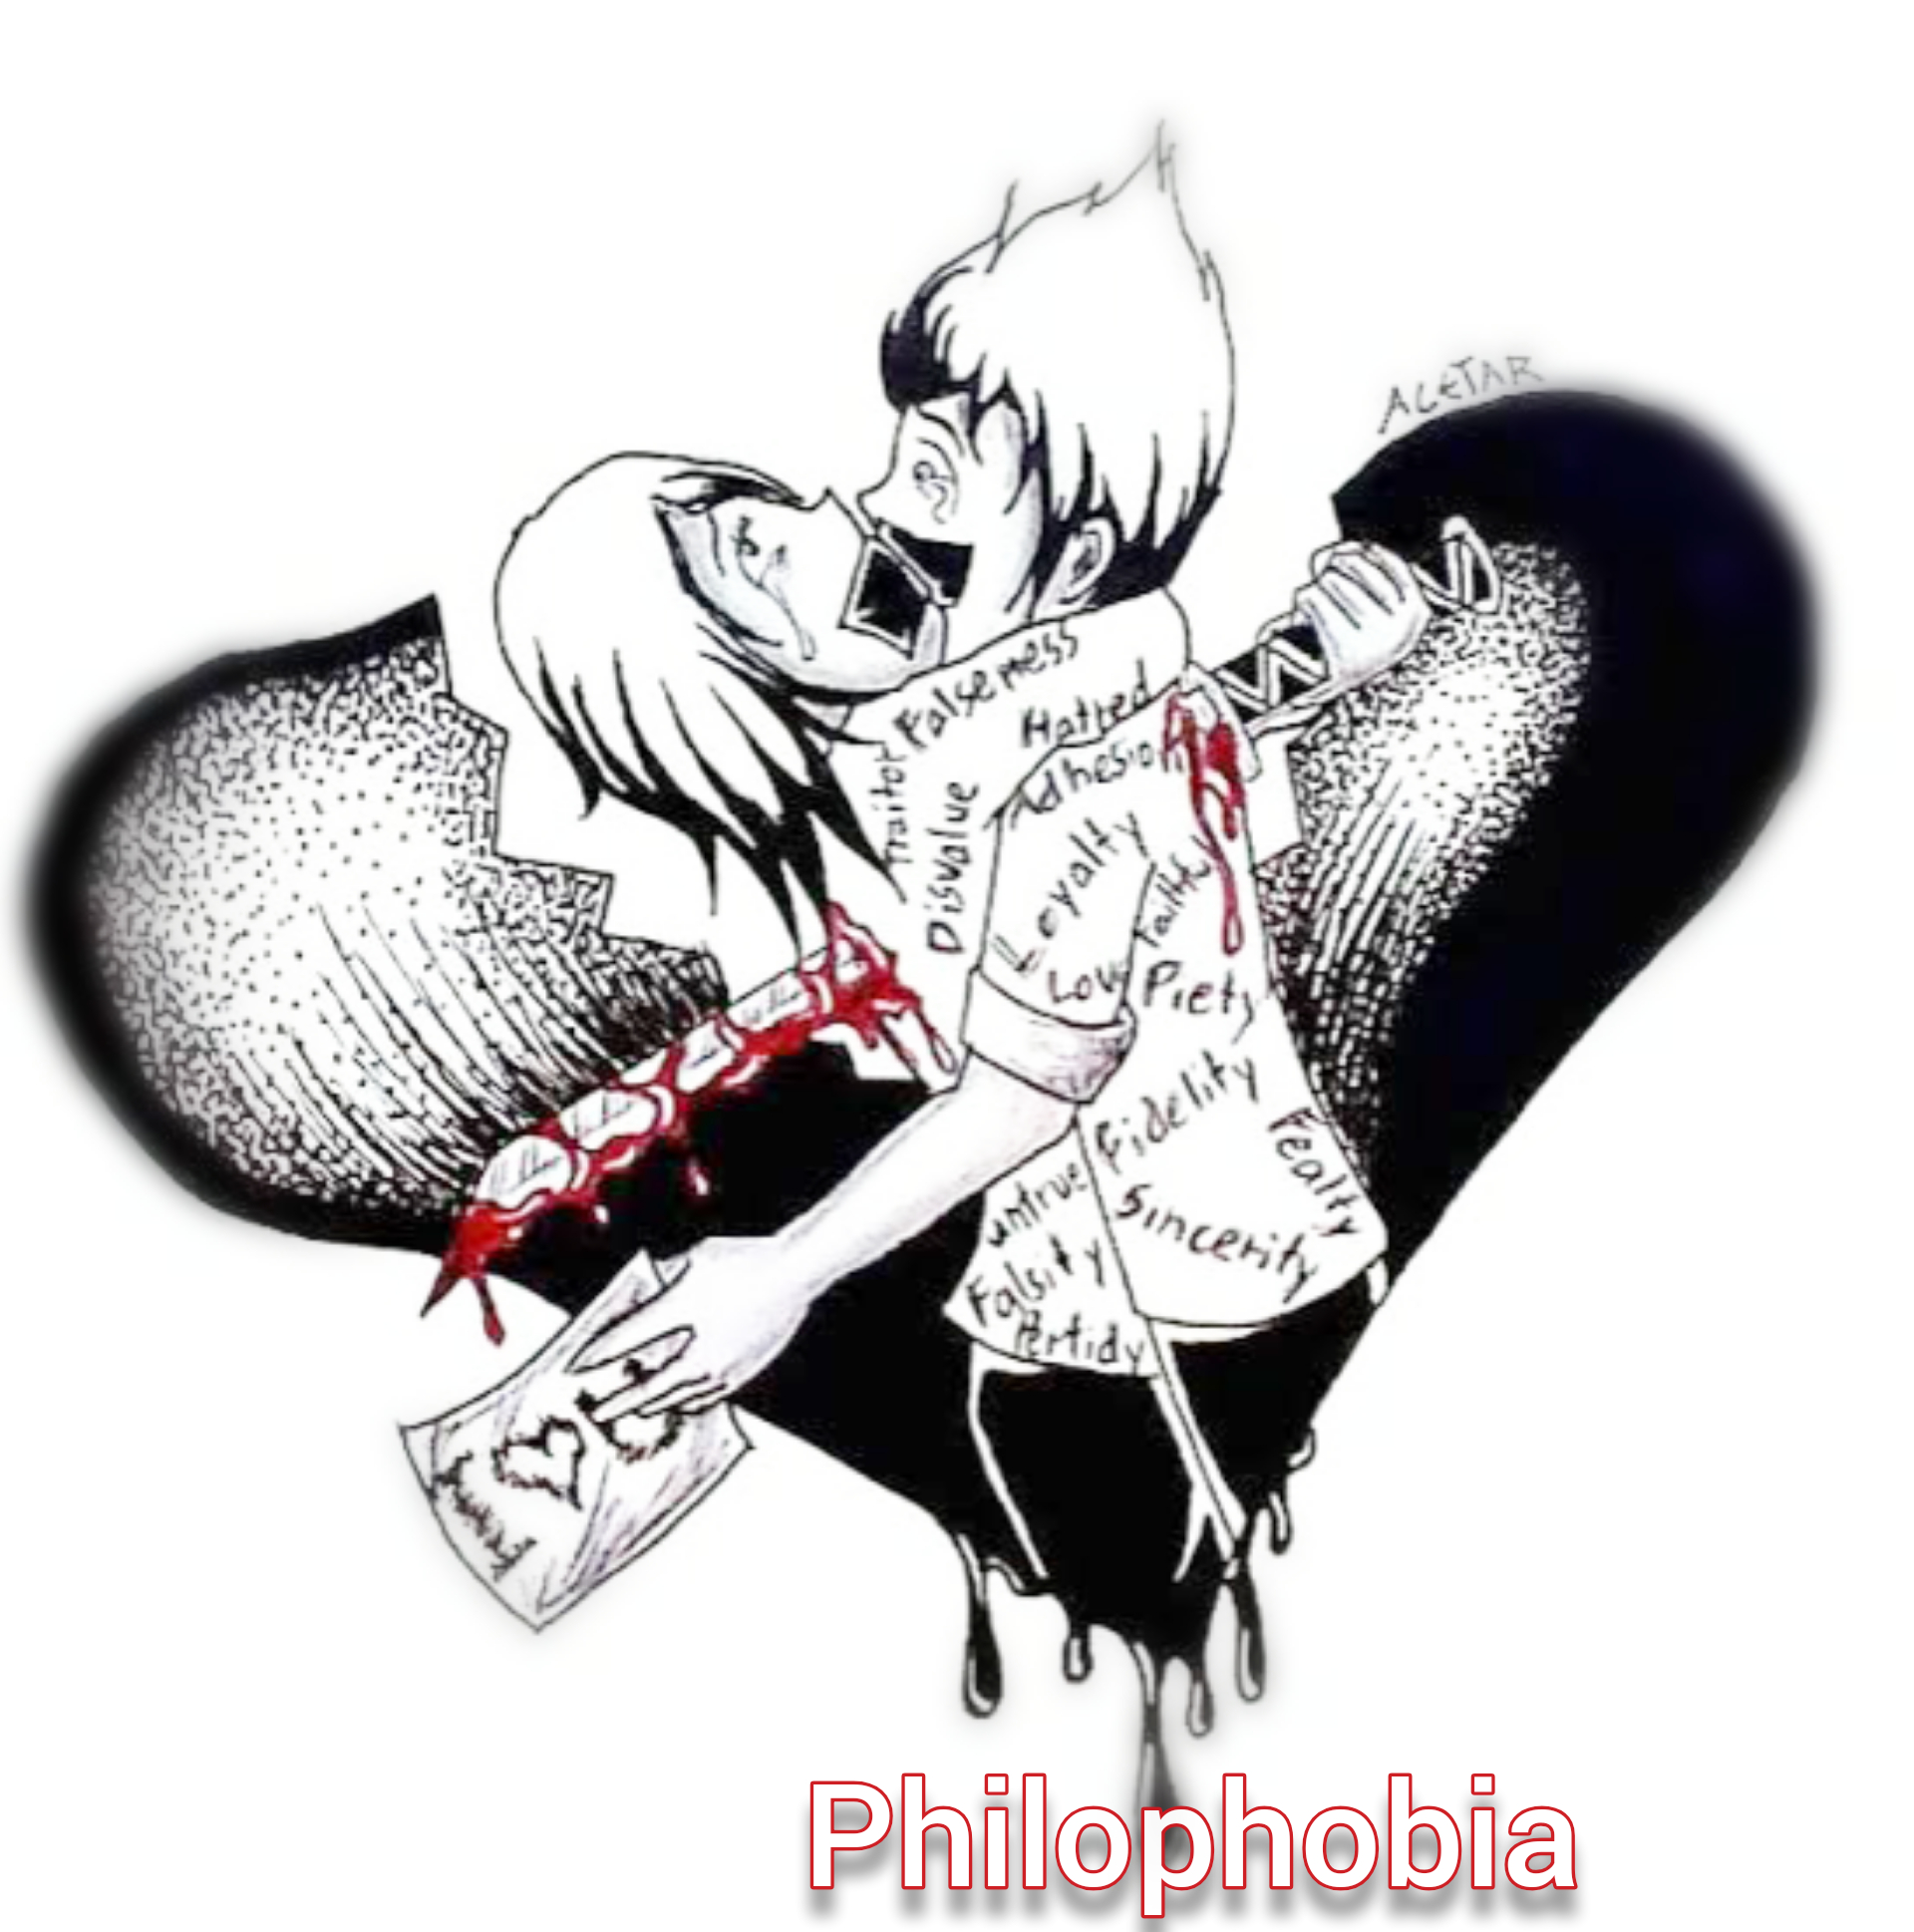 Philophobia: Being In Love Or Being Involved